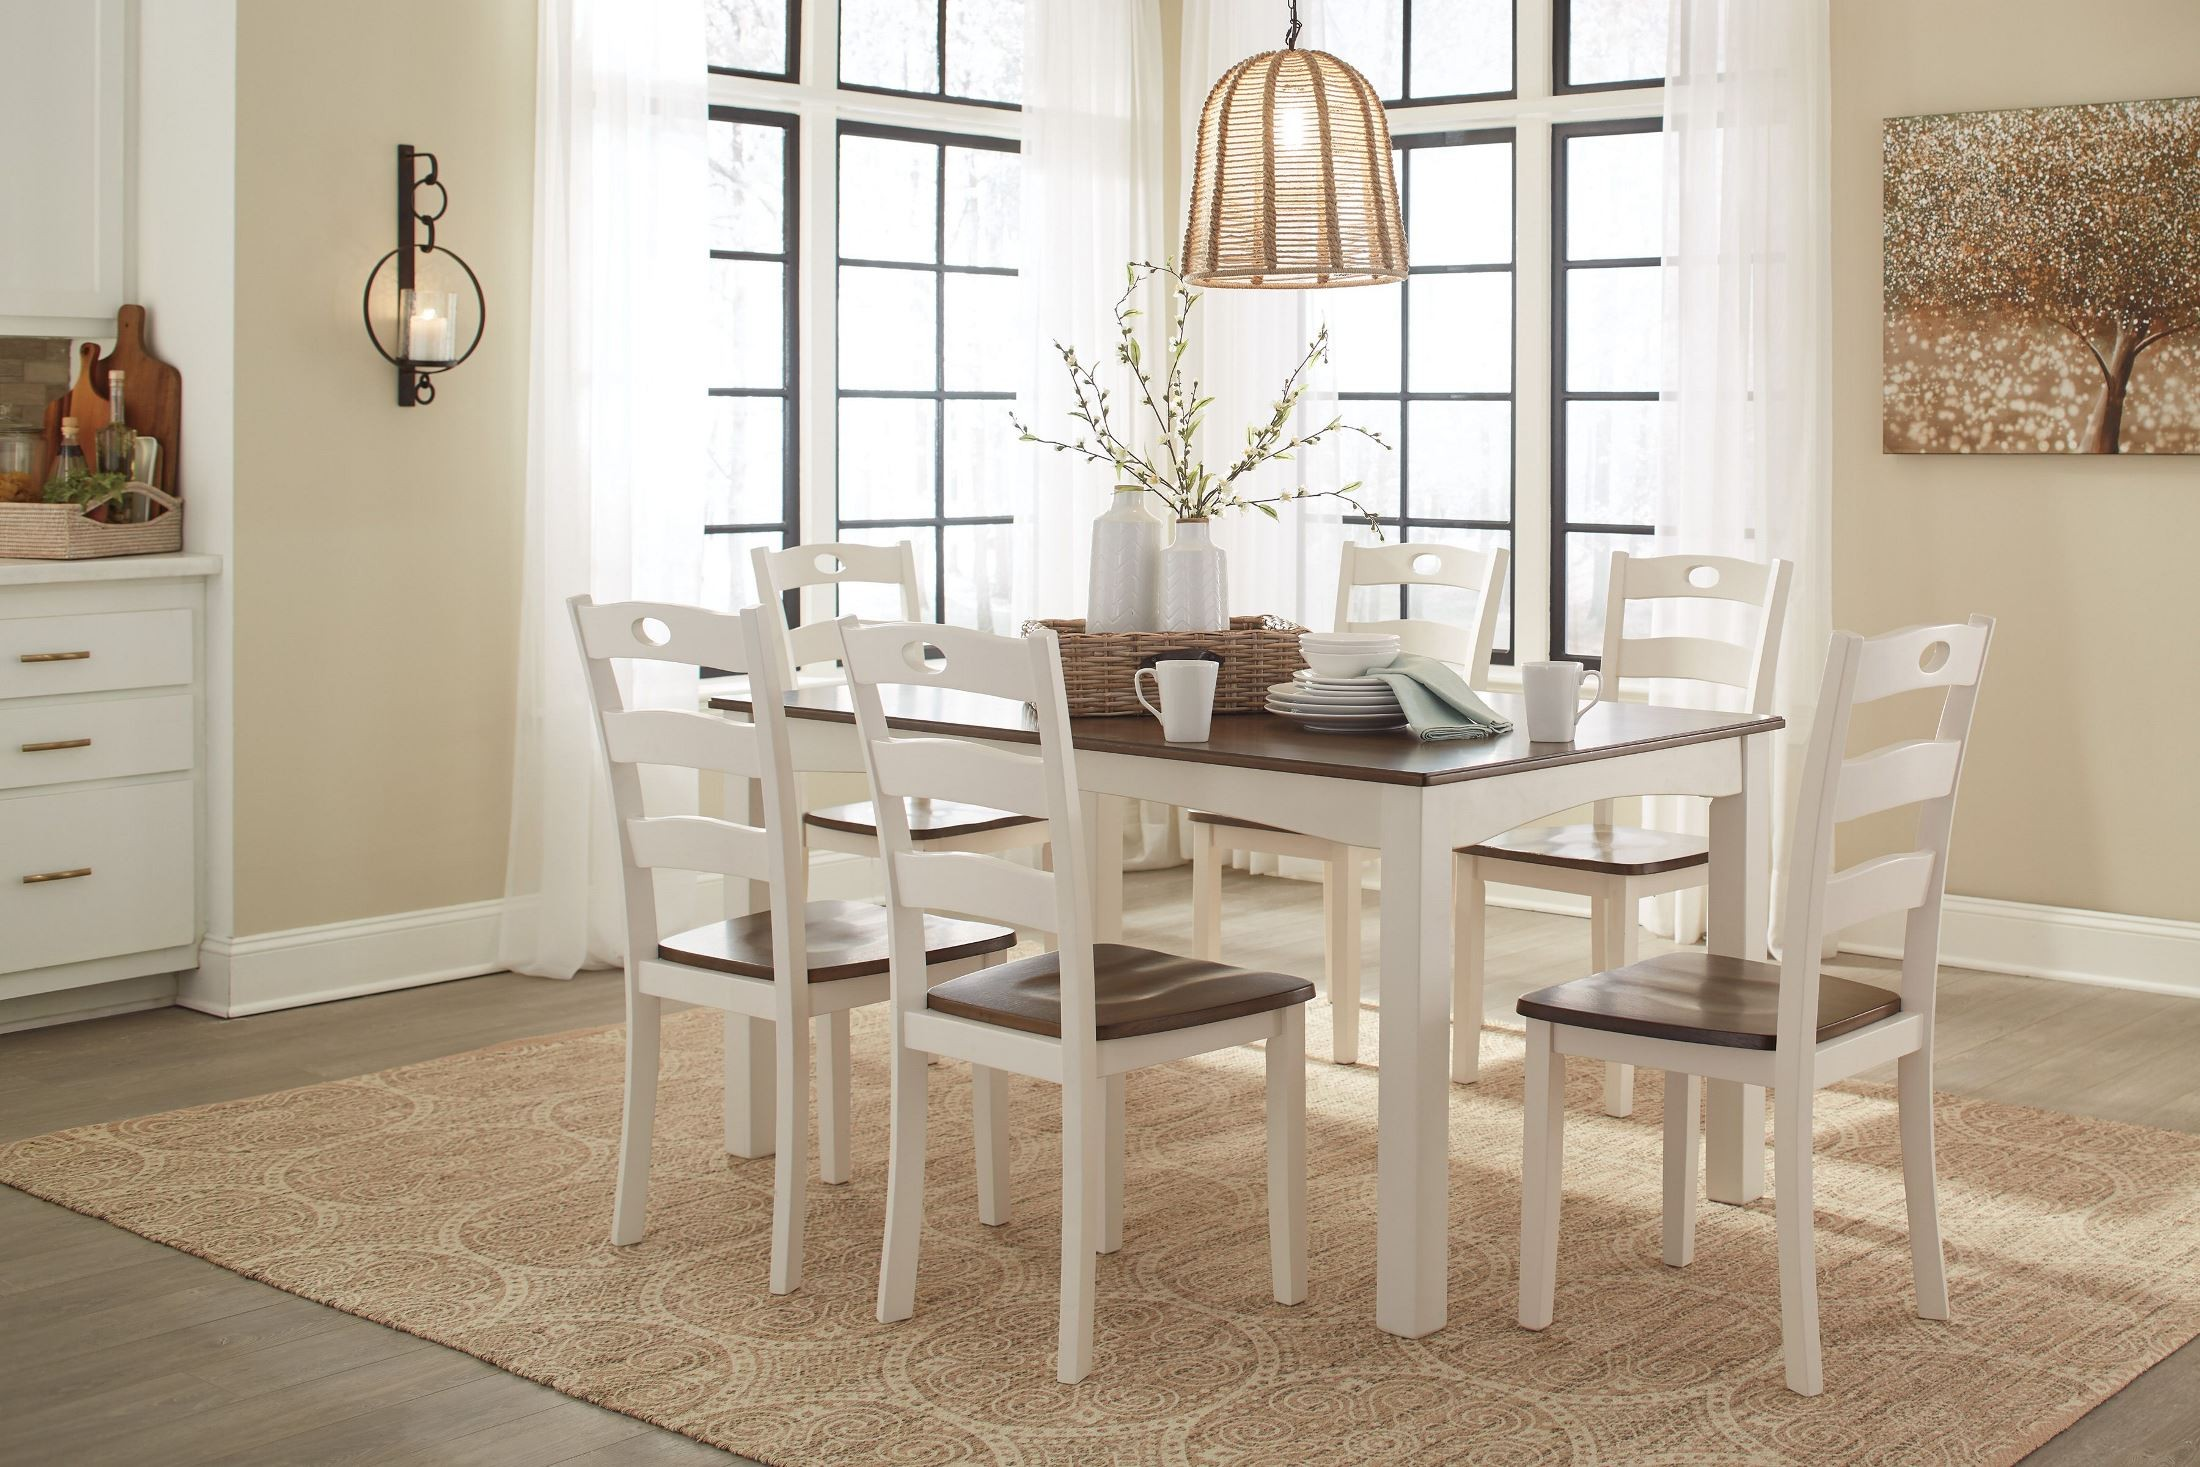 Dining Room Set From Ashley